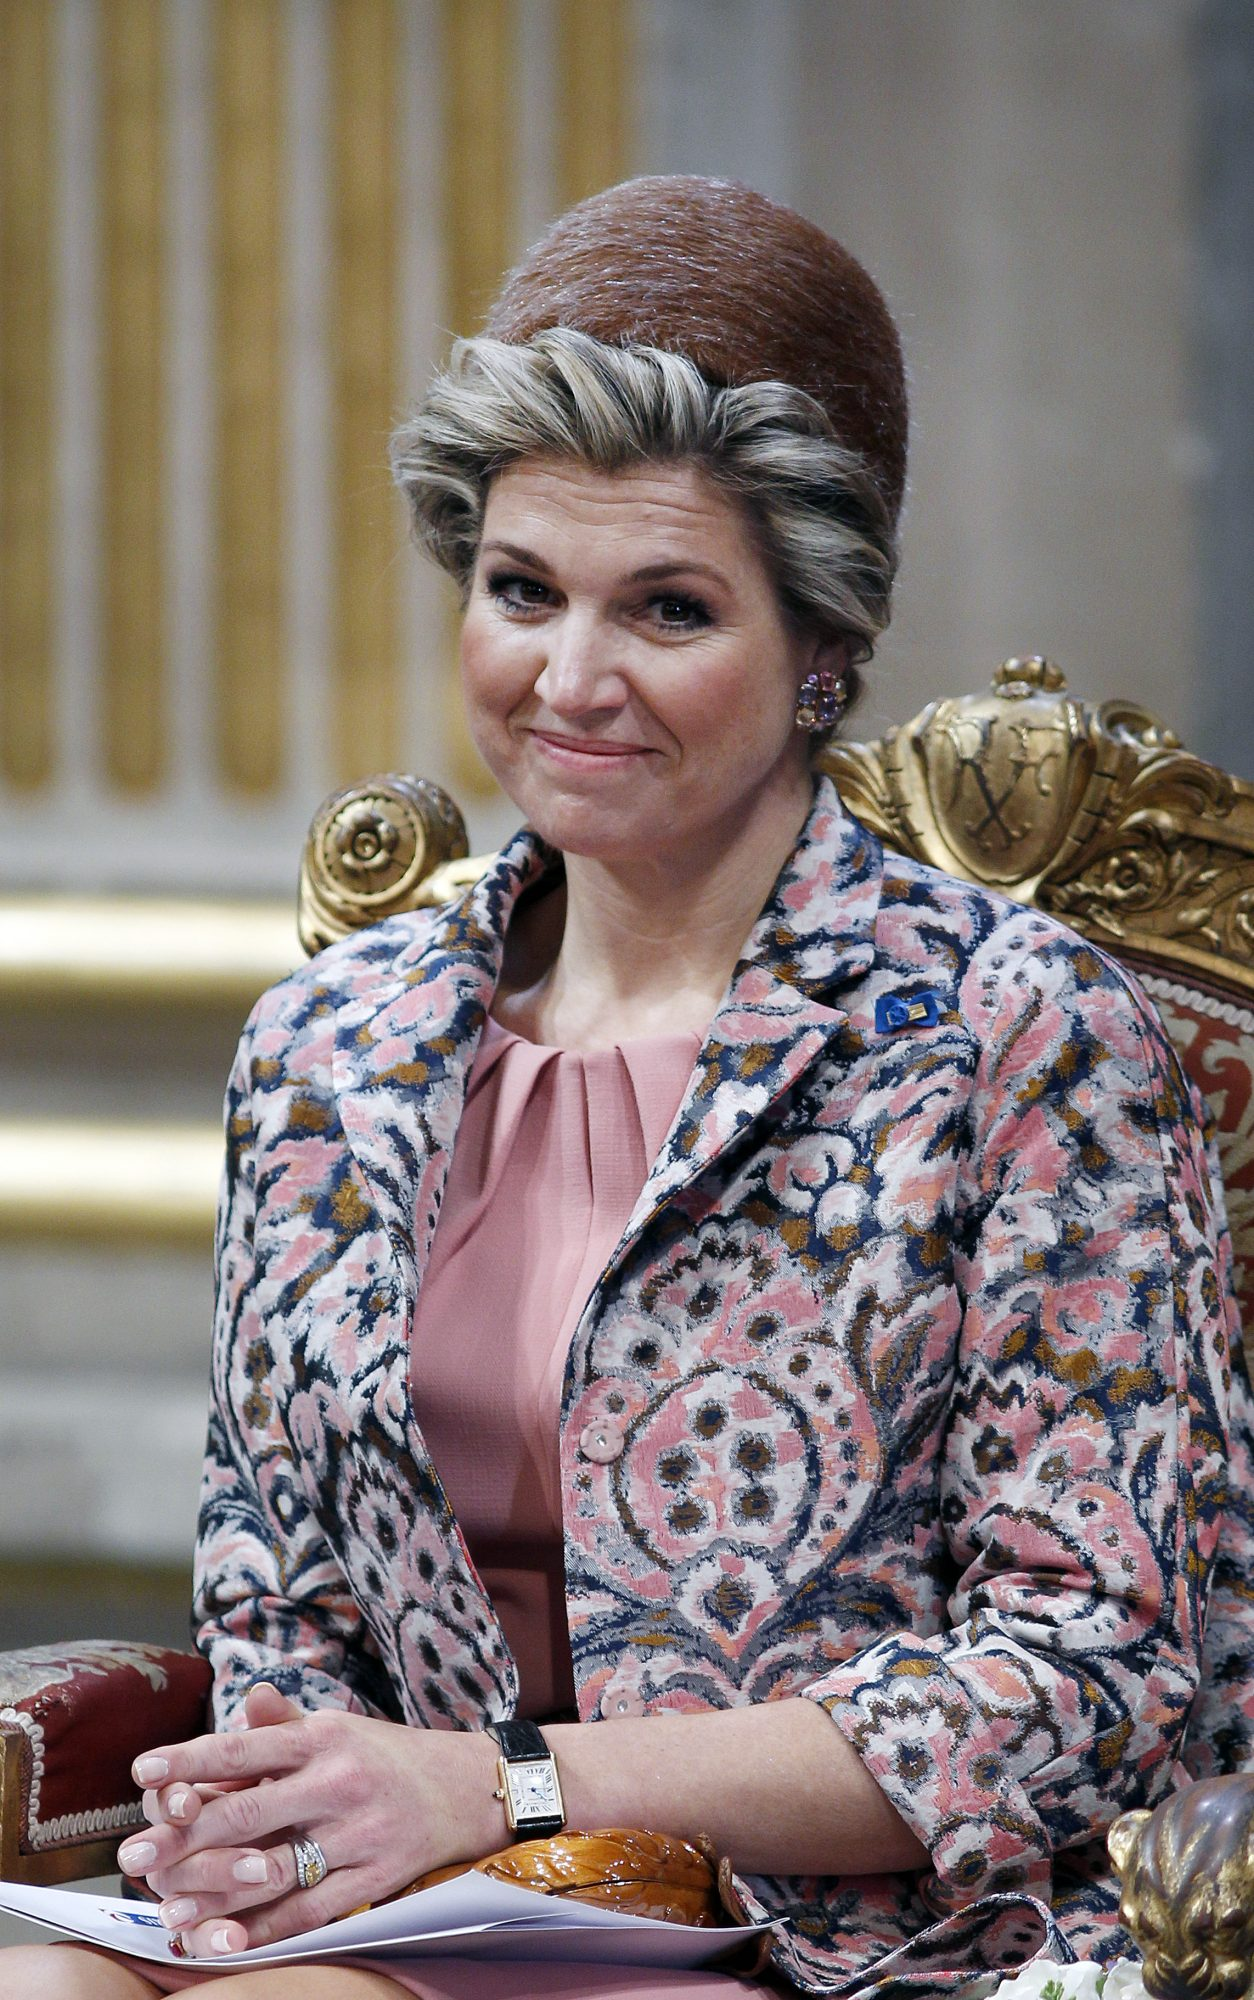 Royal Engagement Rings Queen Maxima of the Netherlands